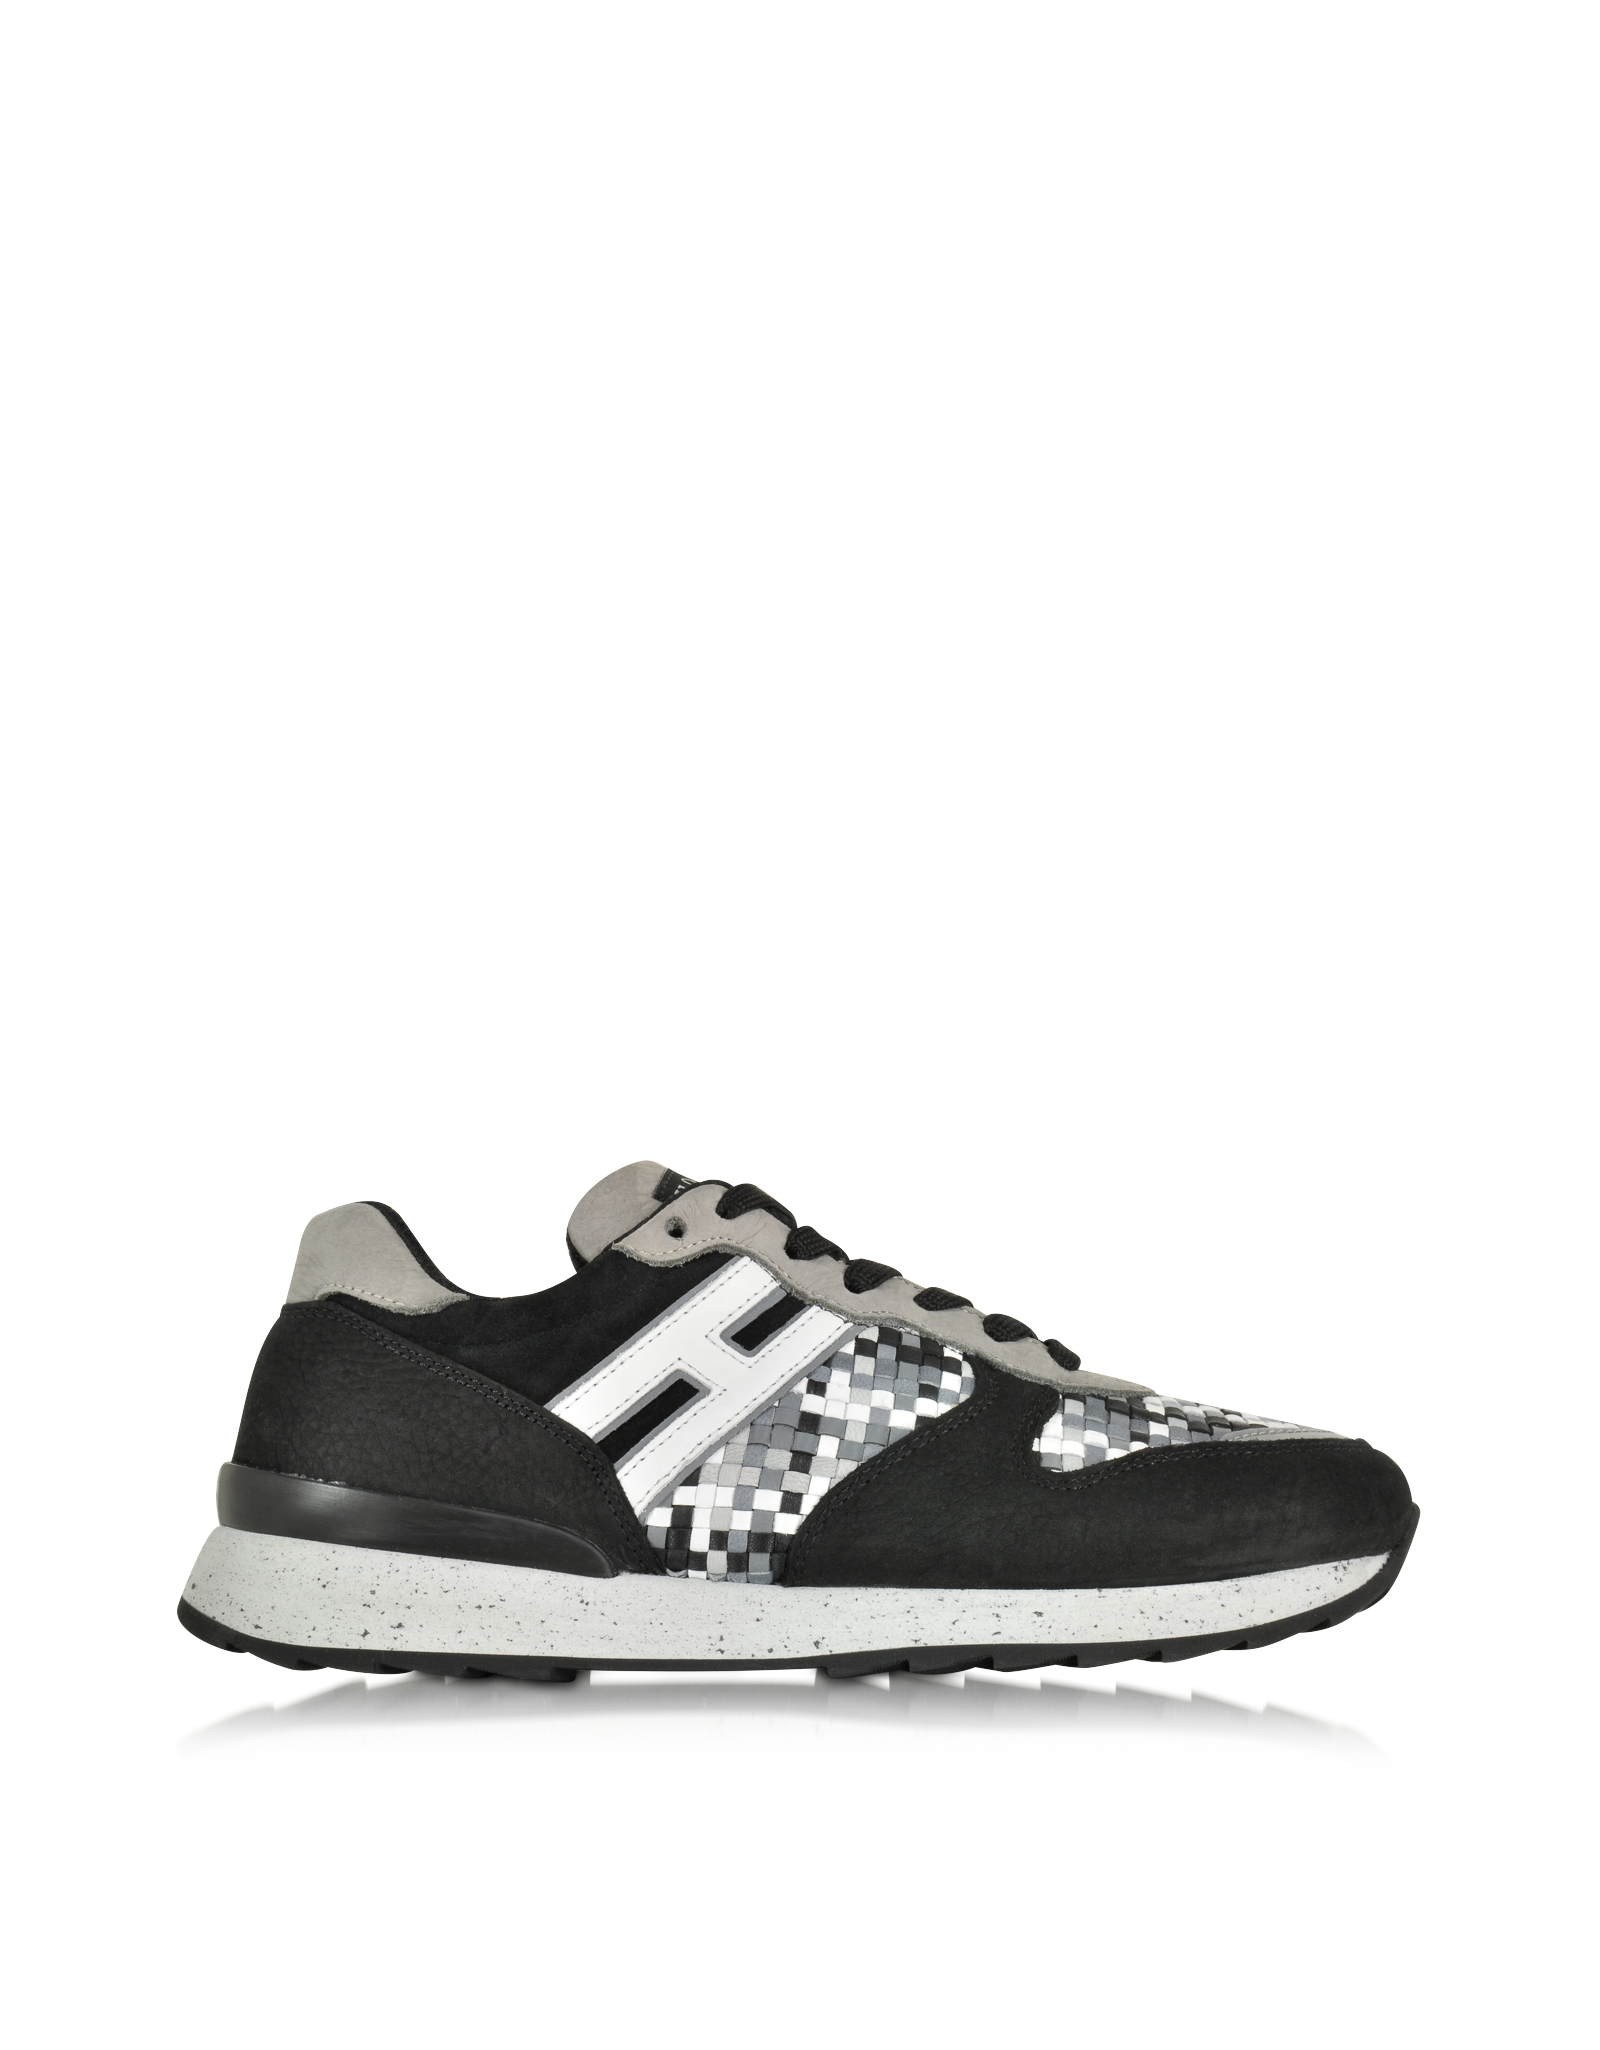 hogan rebel multicolor leather and suede sneaker for men lyst. Black Bedroom Furniture Sets. Home Design Ideas